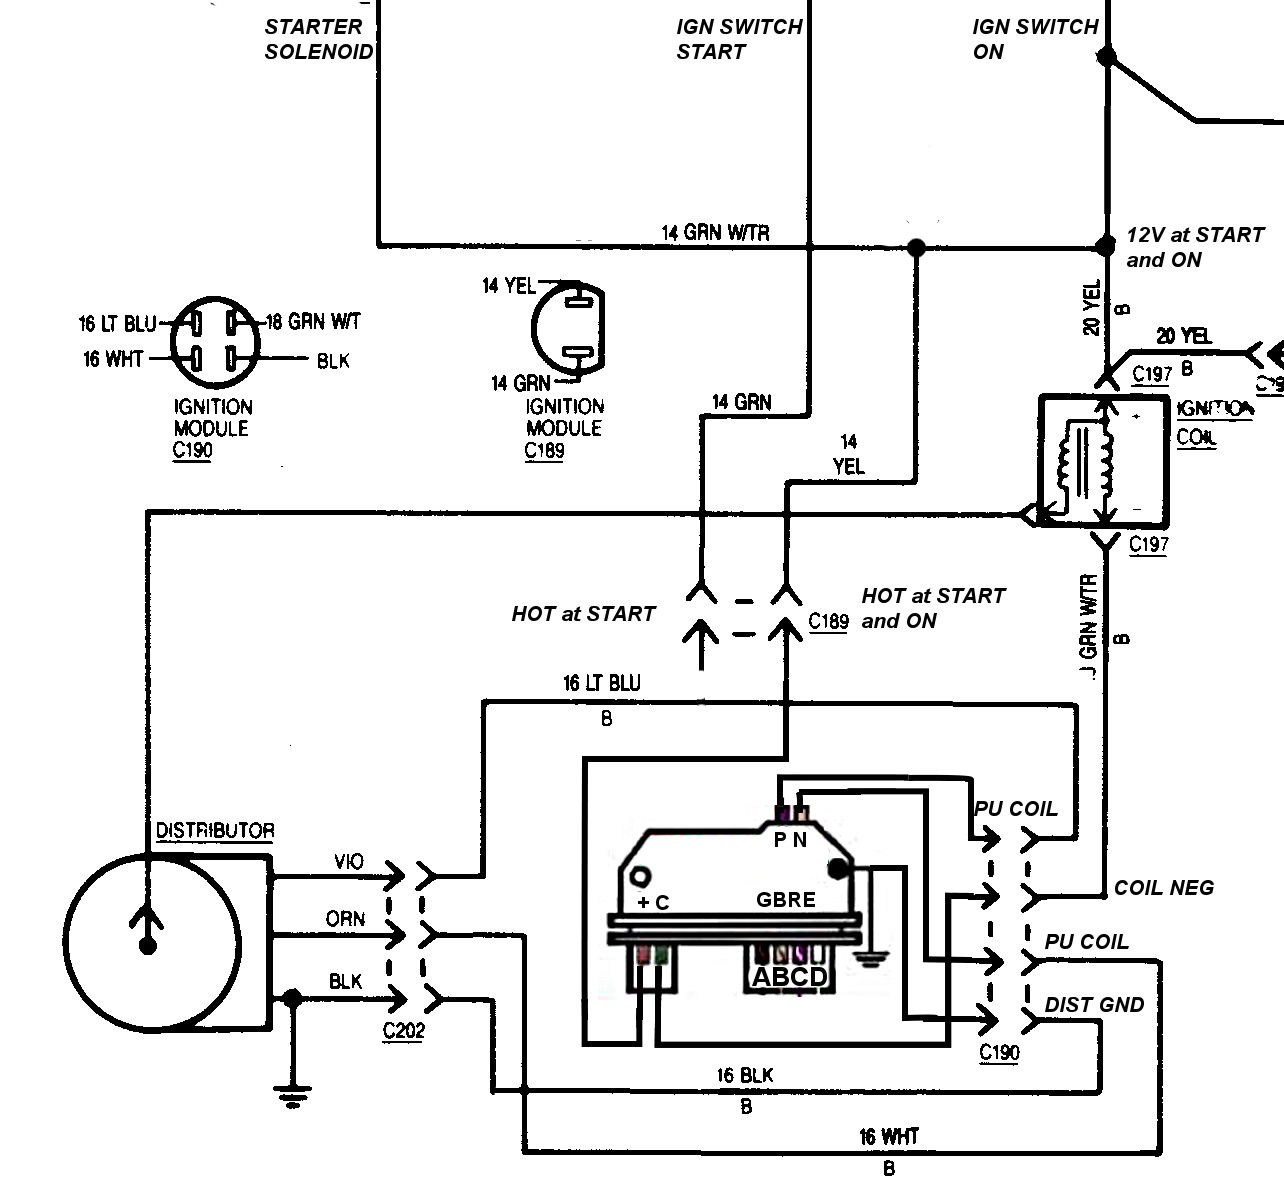 TBI+Wiring+1 troubled child gm tbi ignition wiring gm ignition module wiring diagram at panicattacktreatment.co